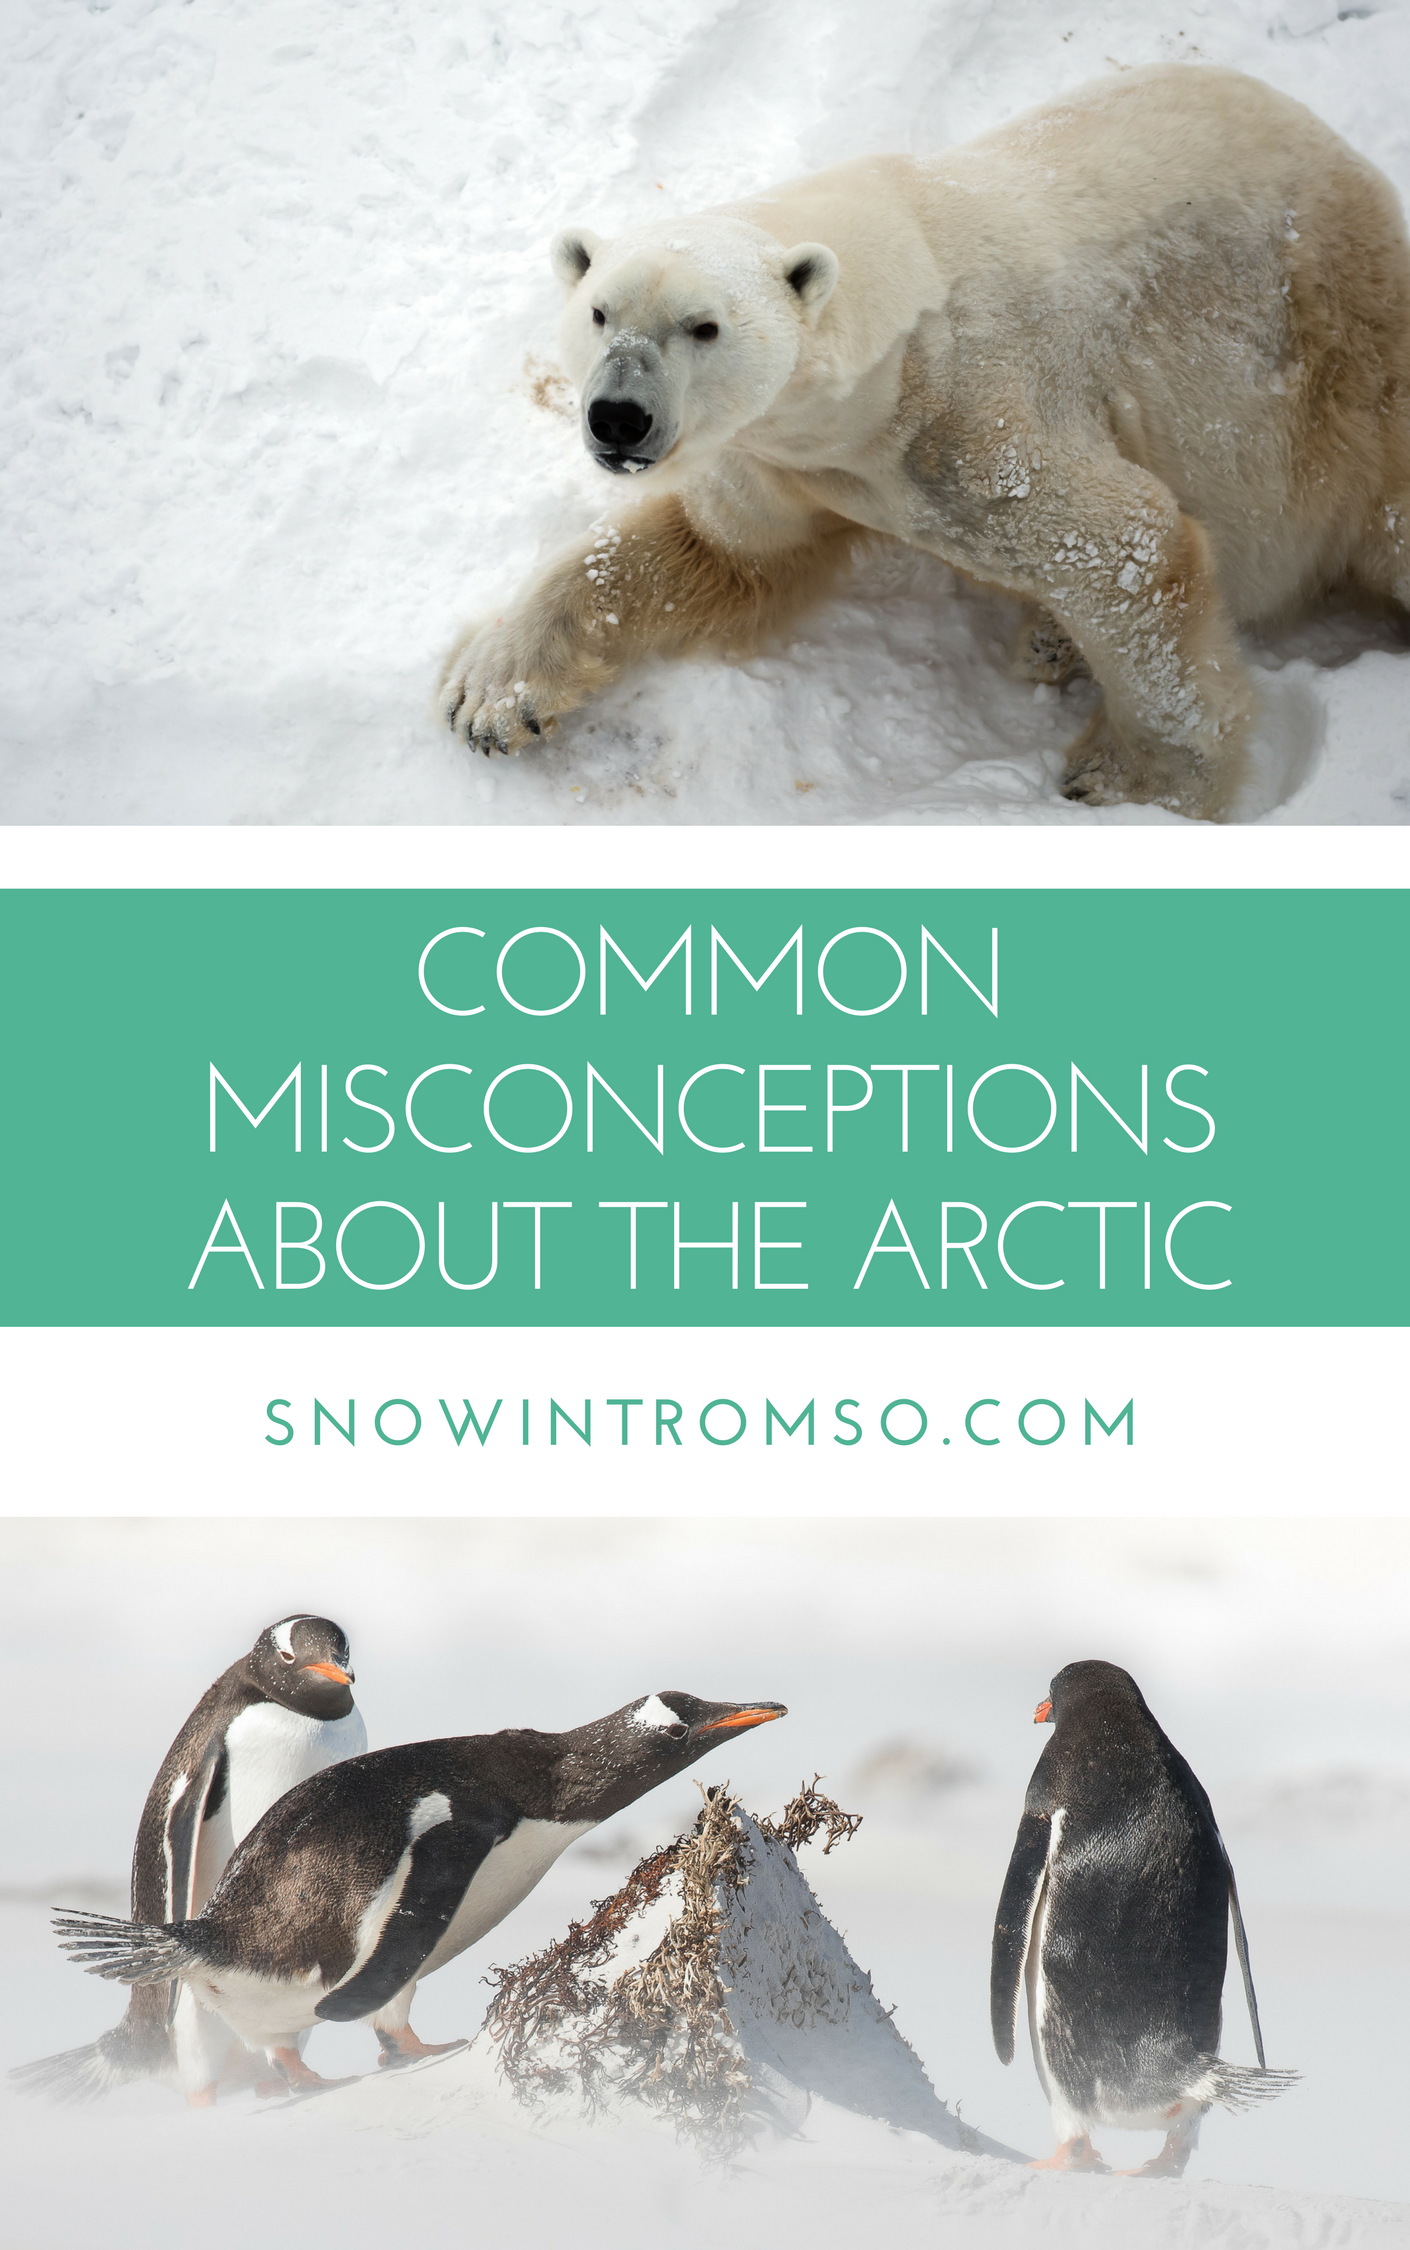 How much do you know about the Arctic? Click through to learn more!